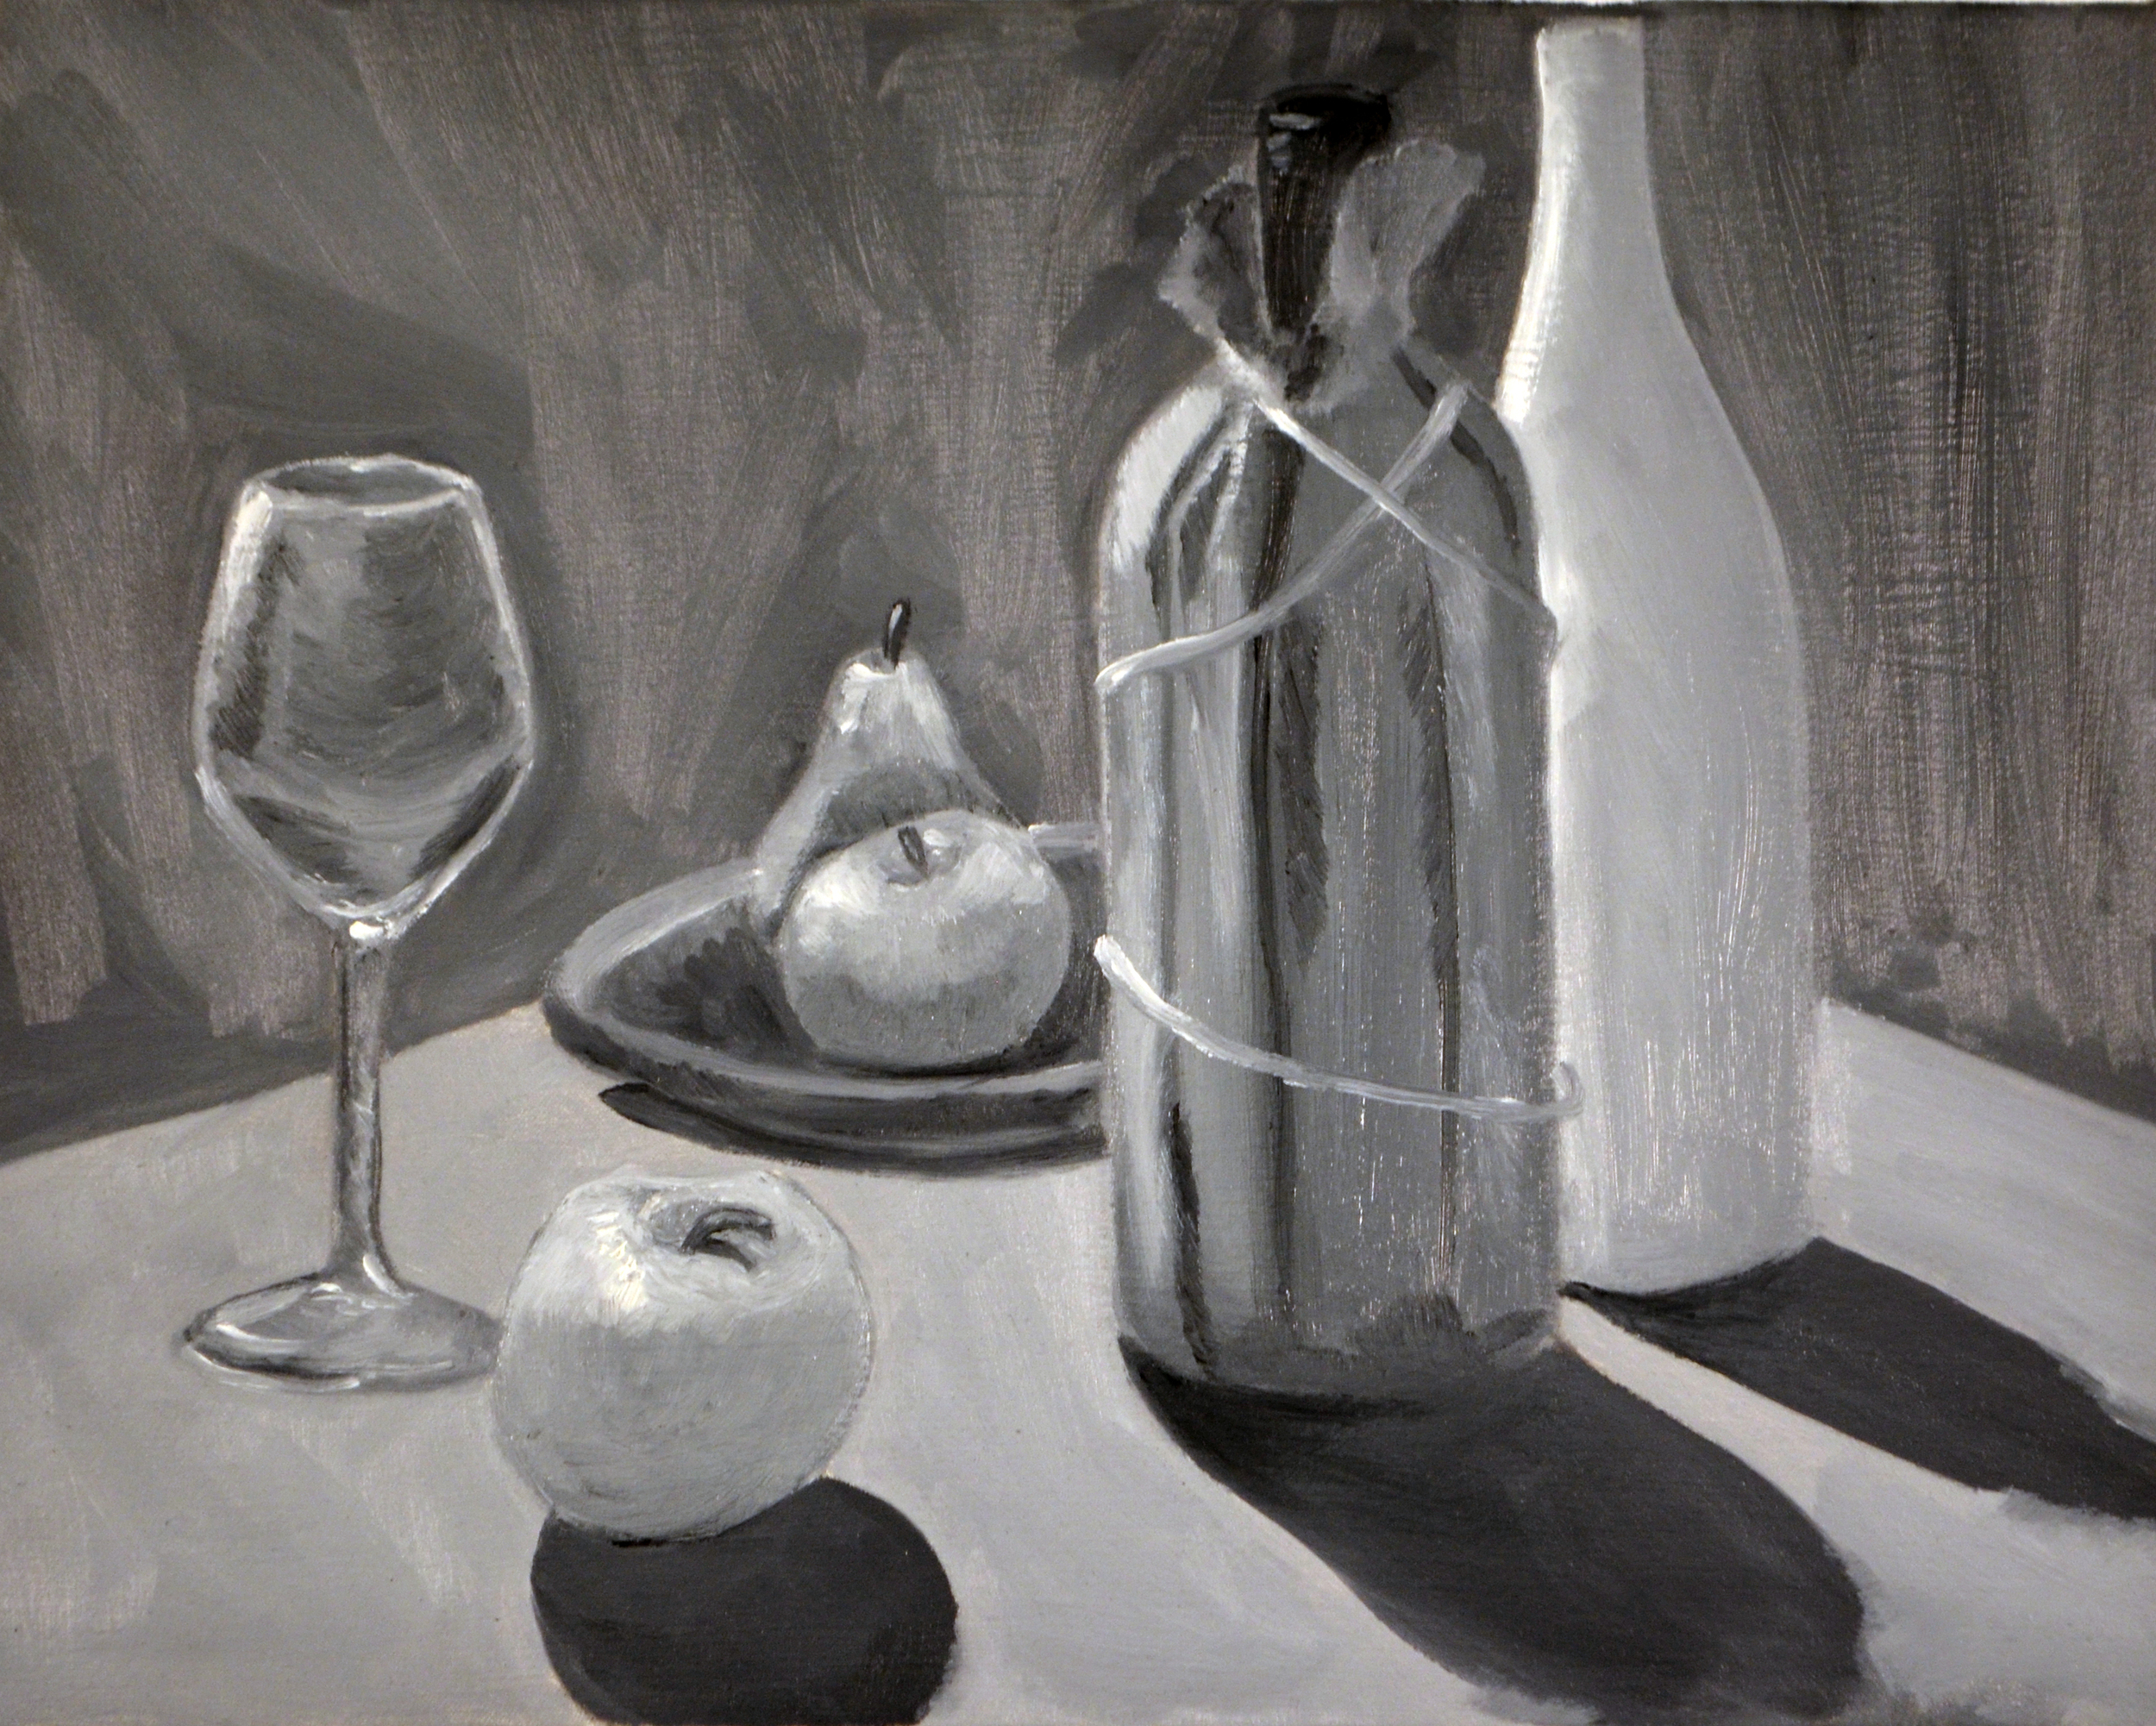 Highschool Value Study of a still Life